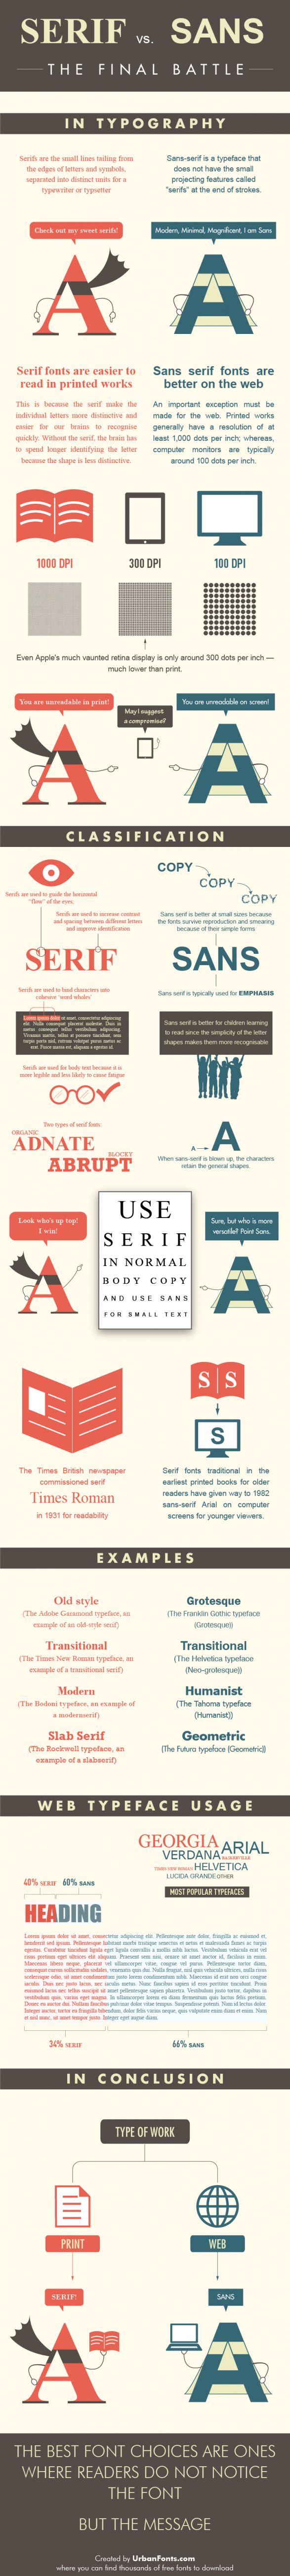 Serif Vs Sans: The Final Battle  What Font For Resume